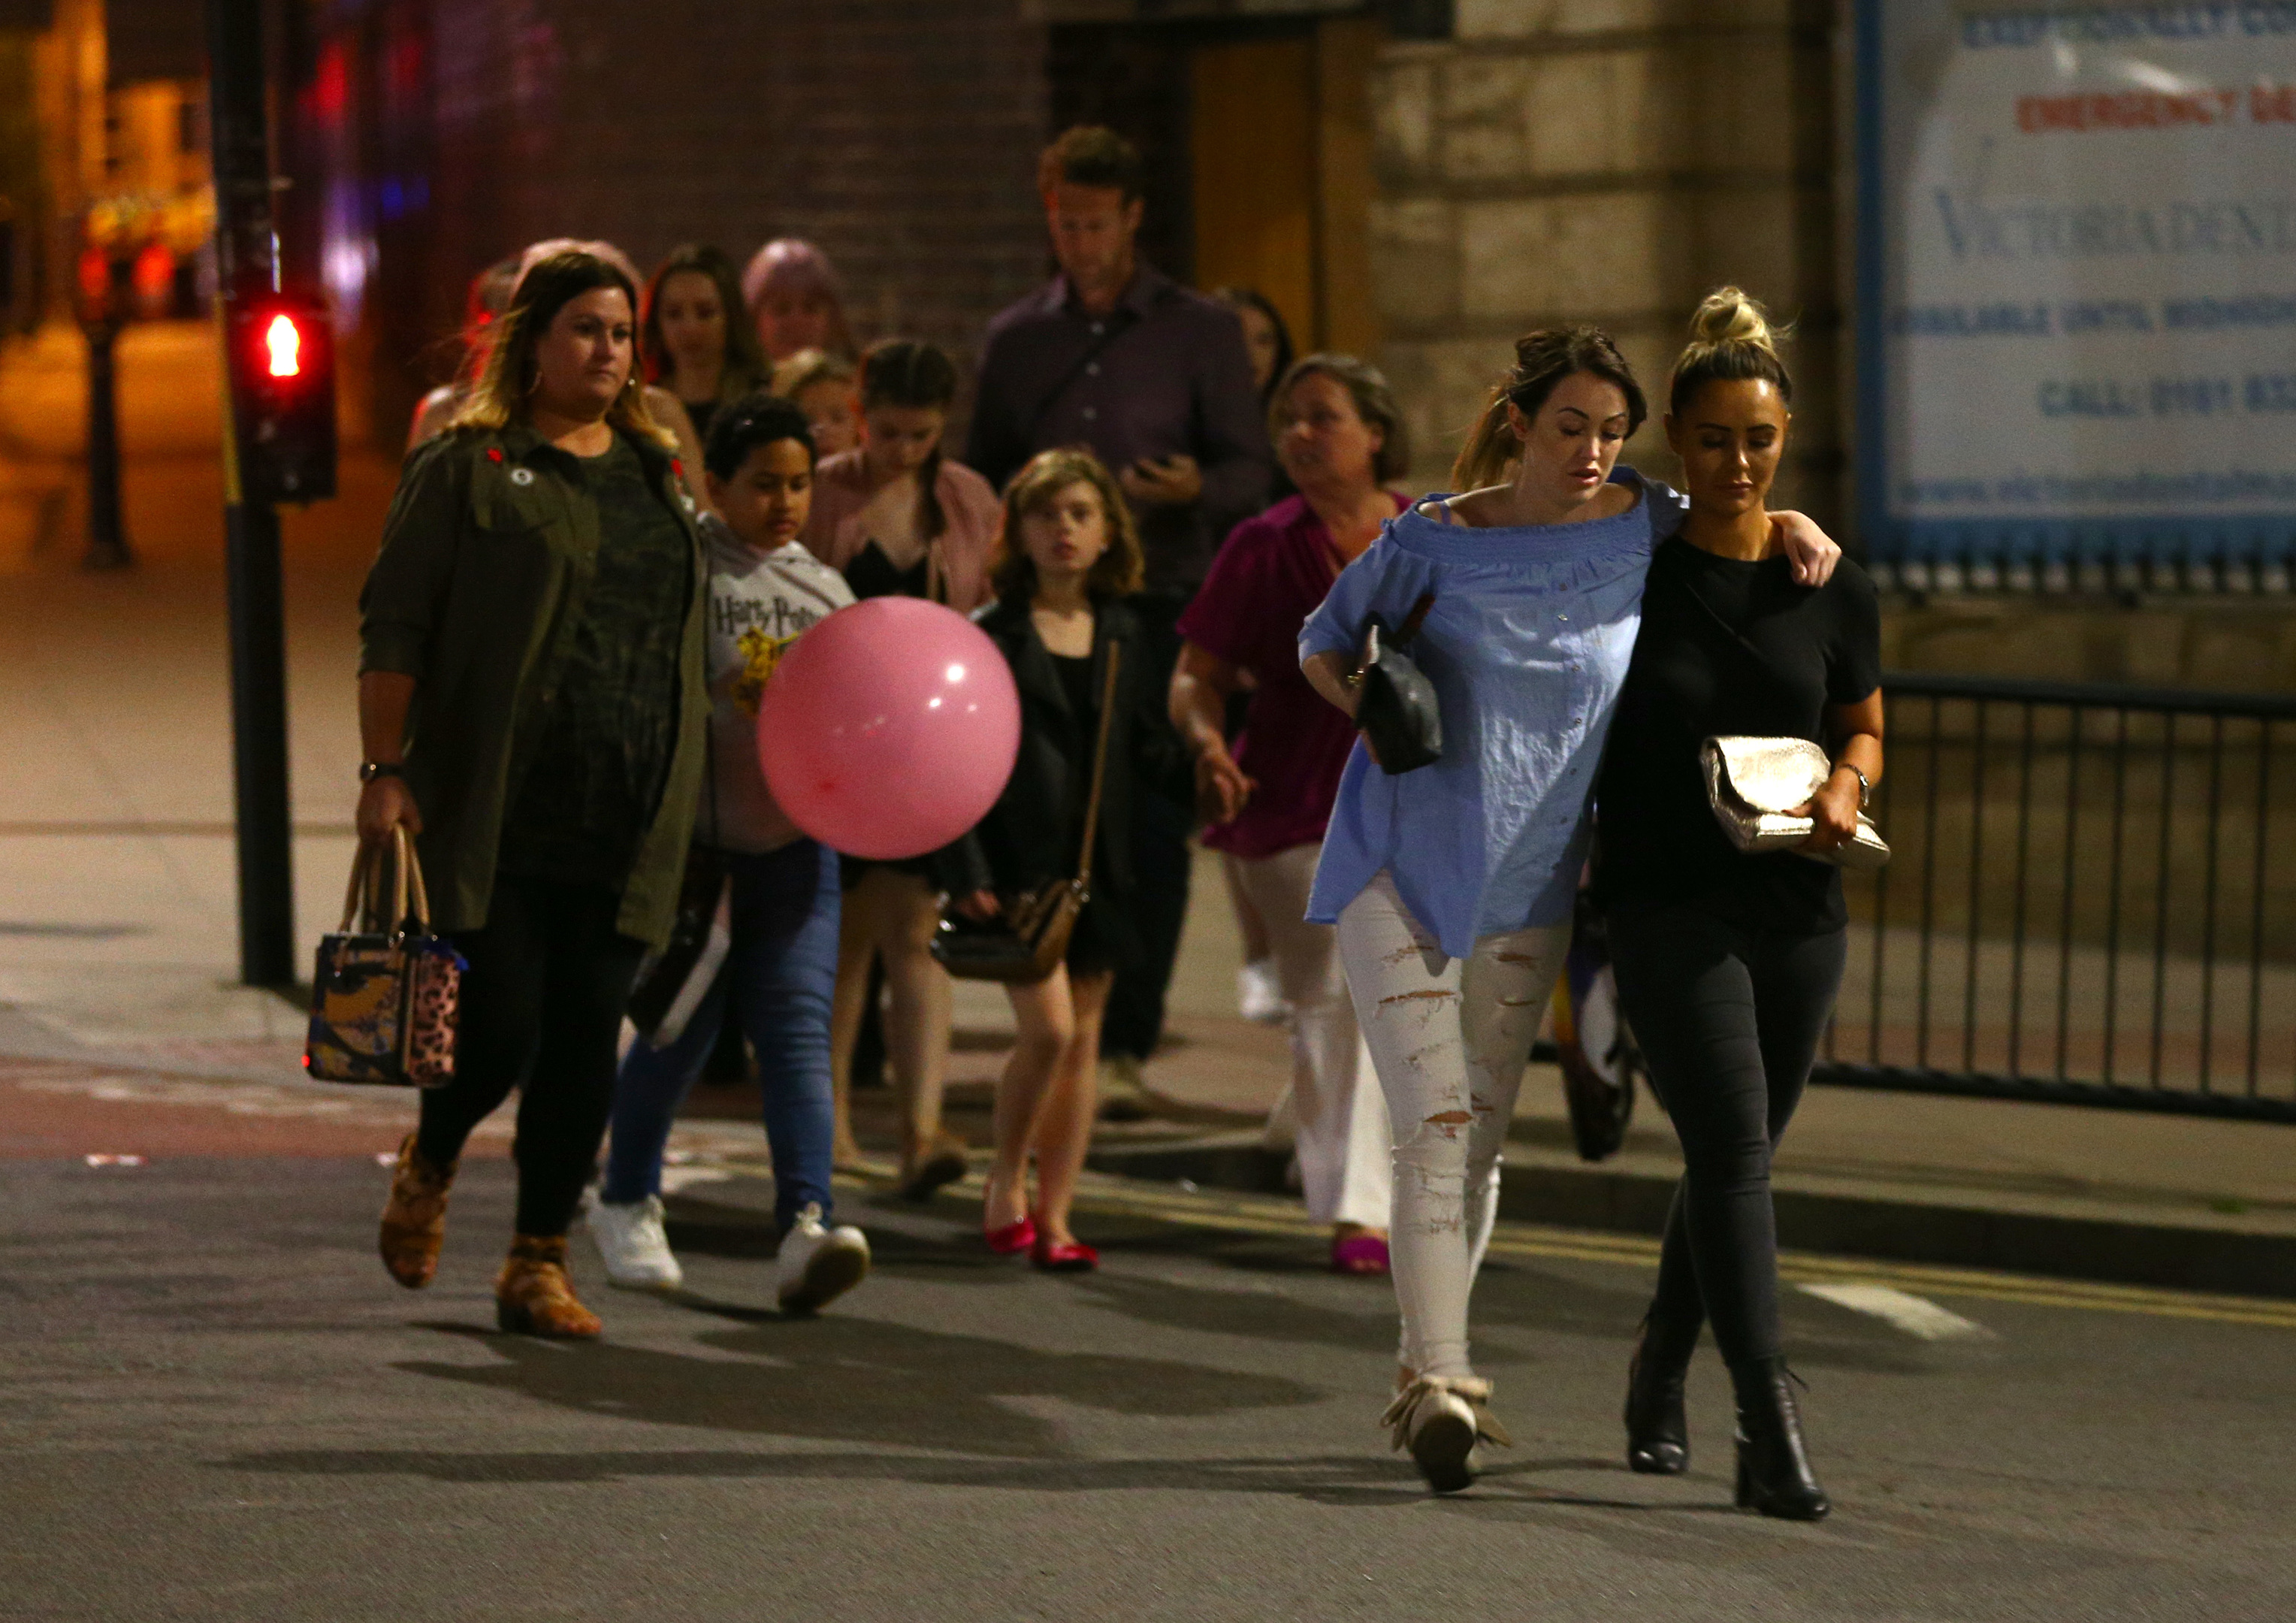 Fans leaving the concert on Monday night.